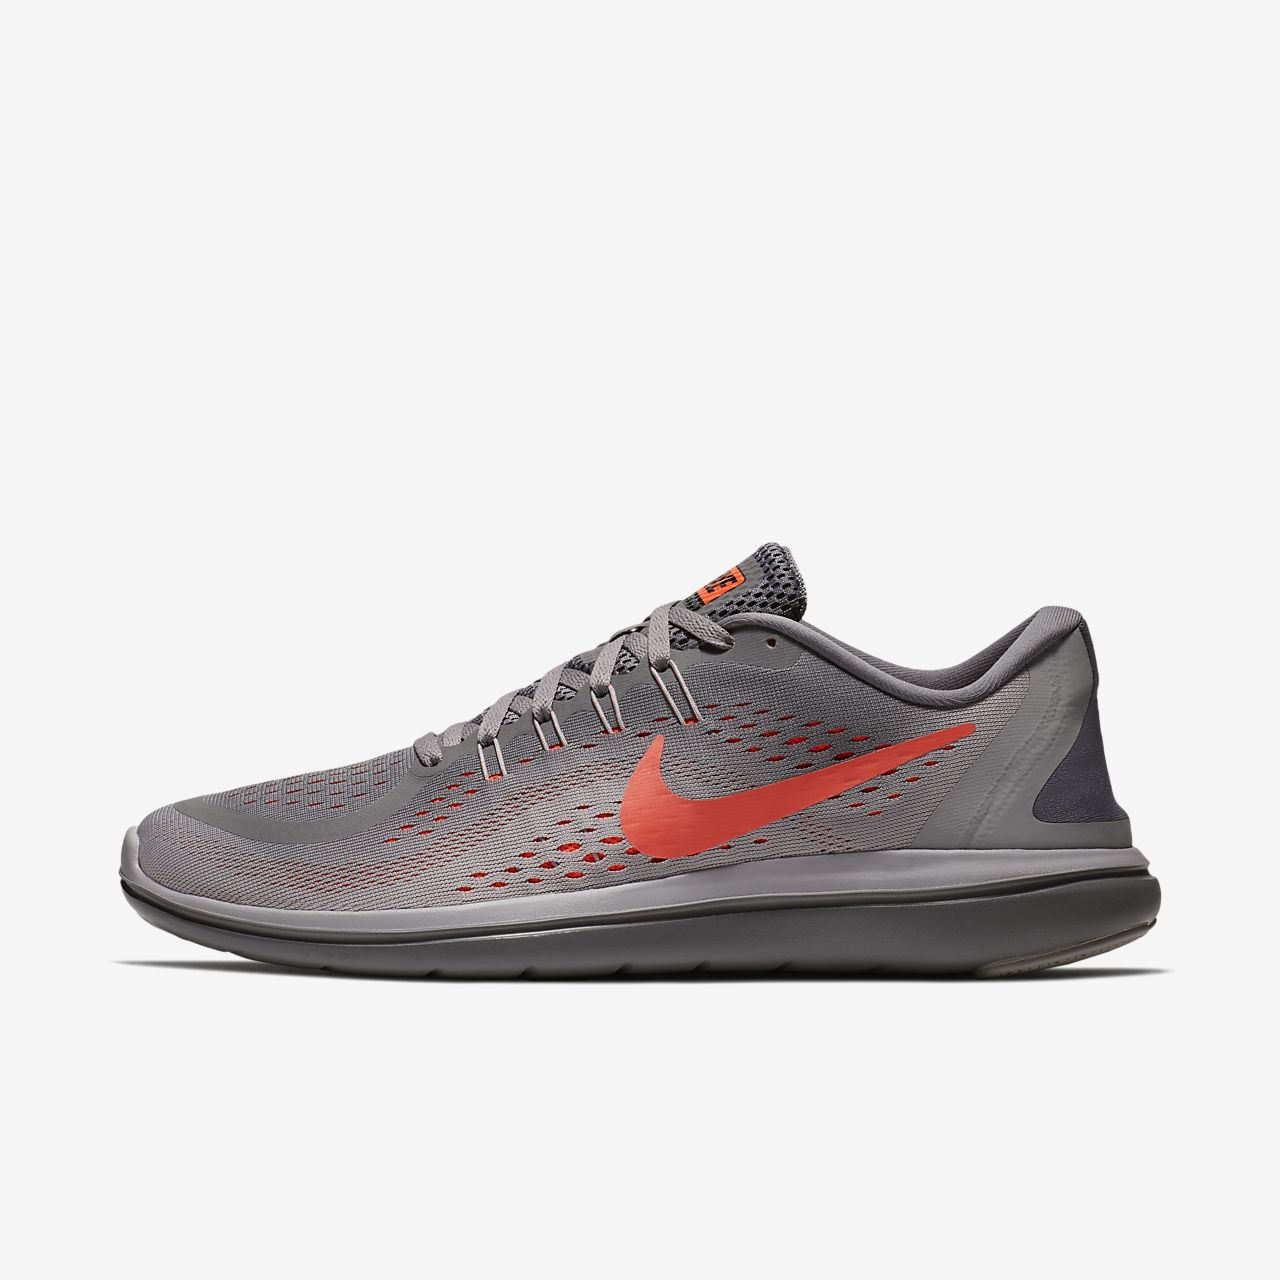 Men's Running Shoe. Nike Flex 2017 RN